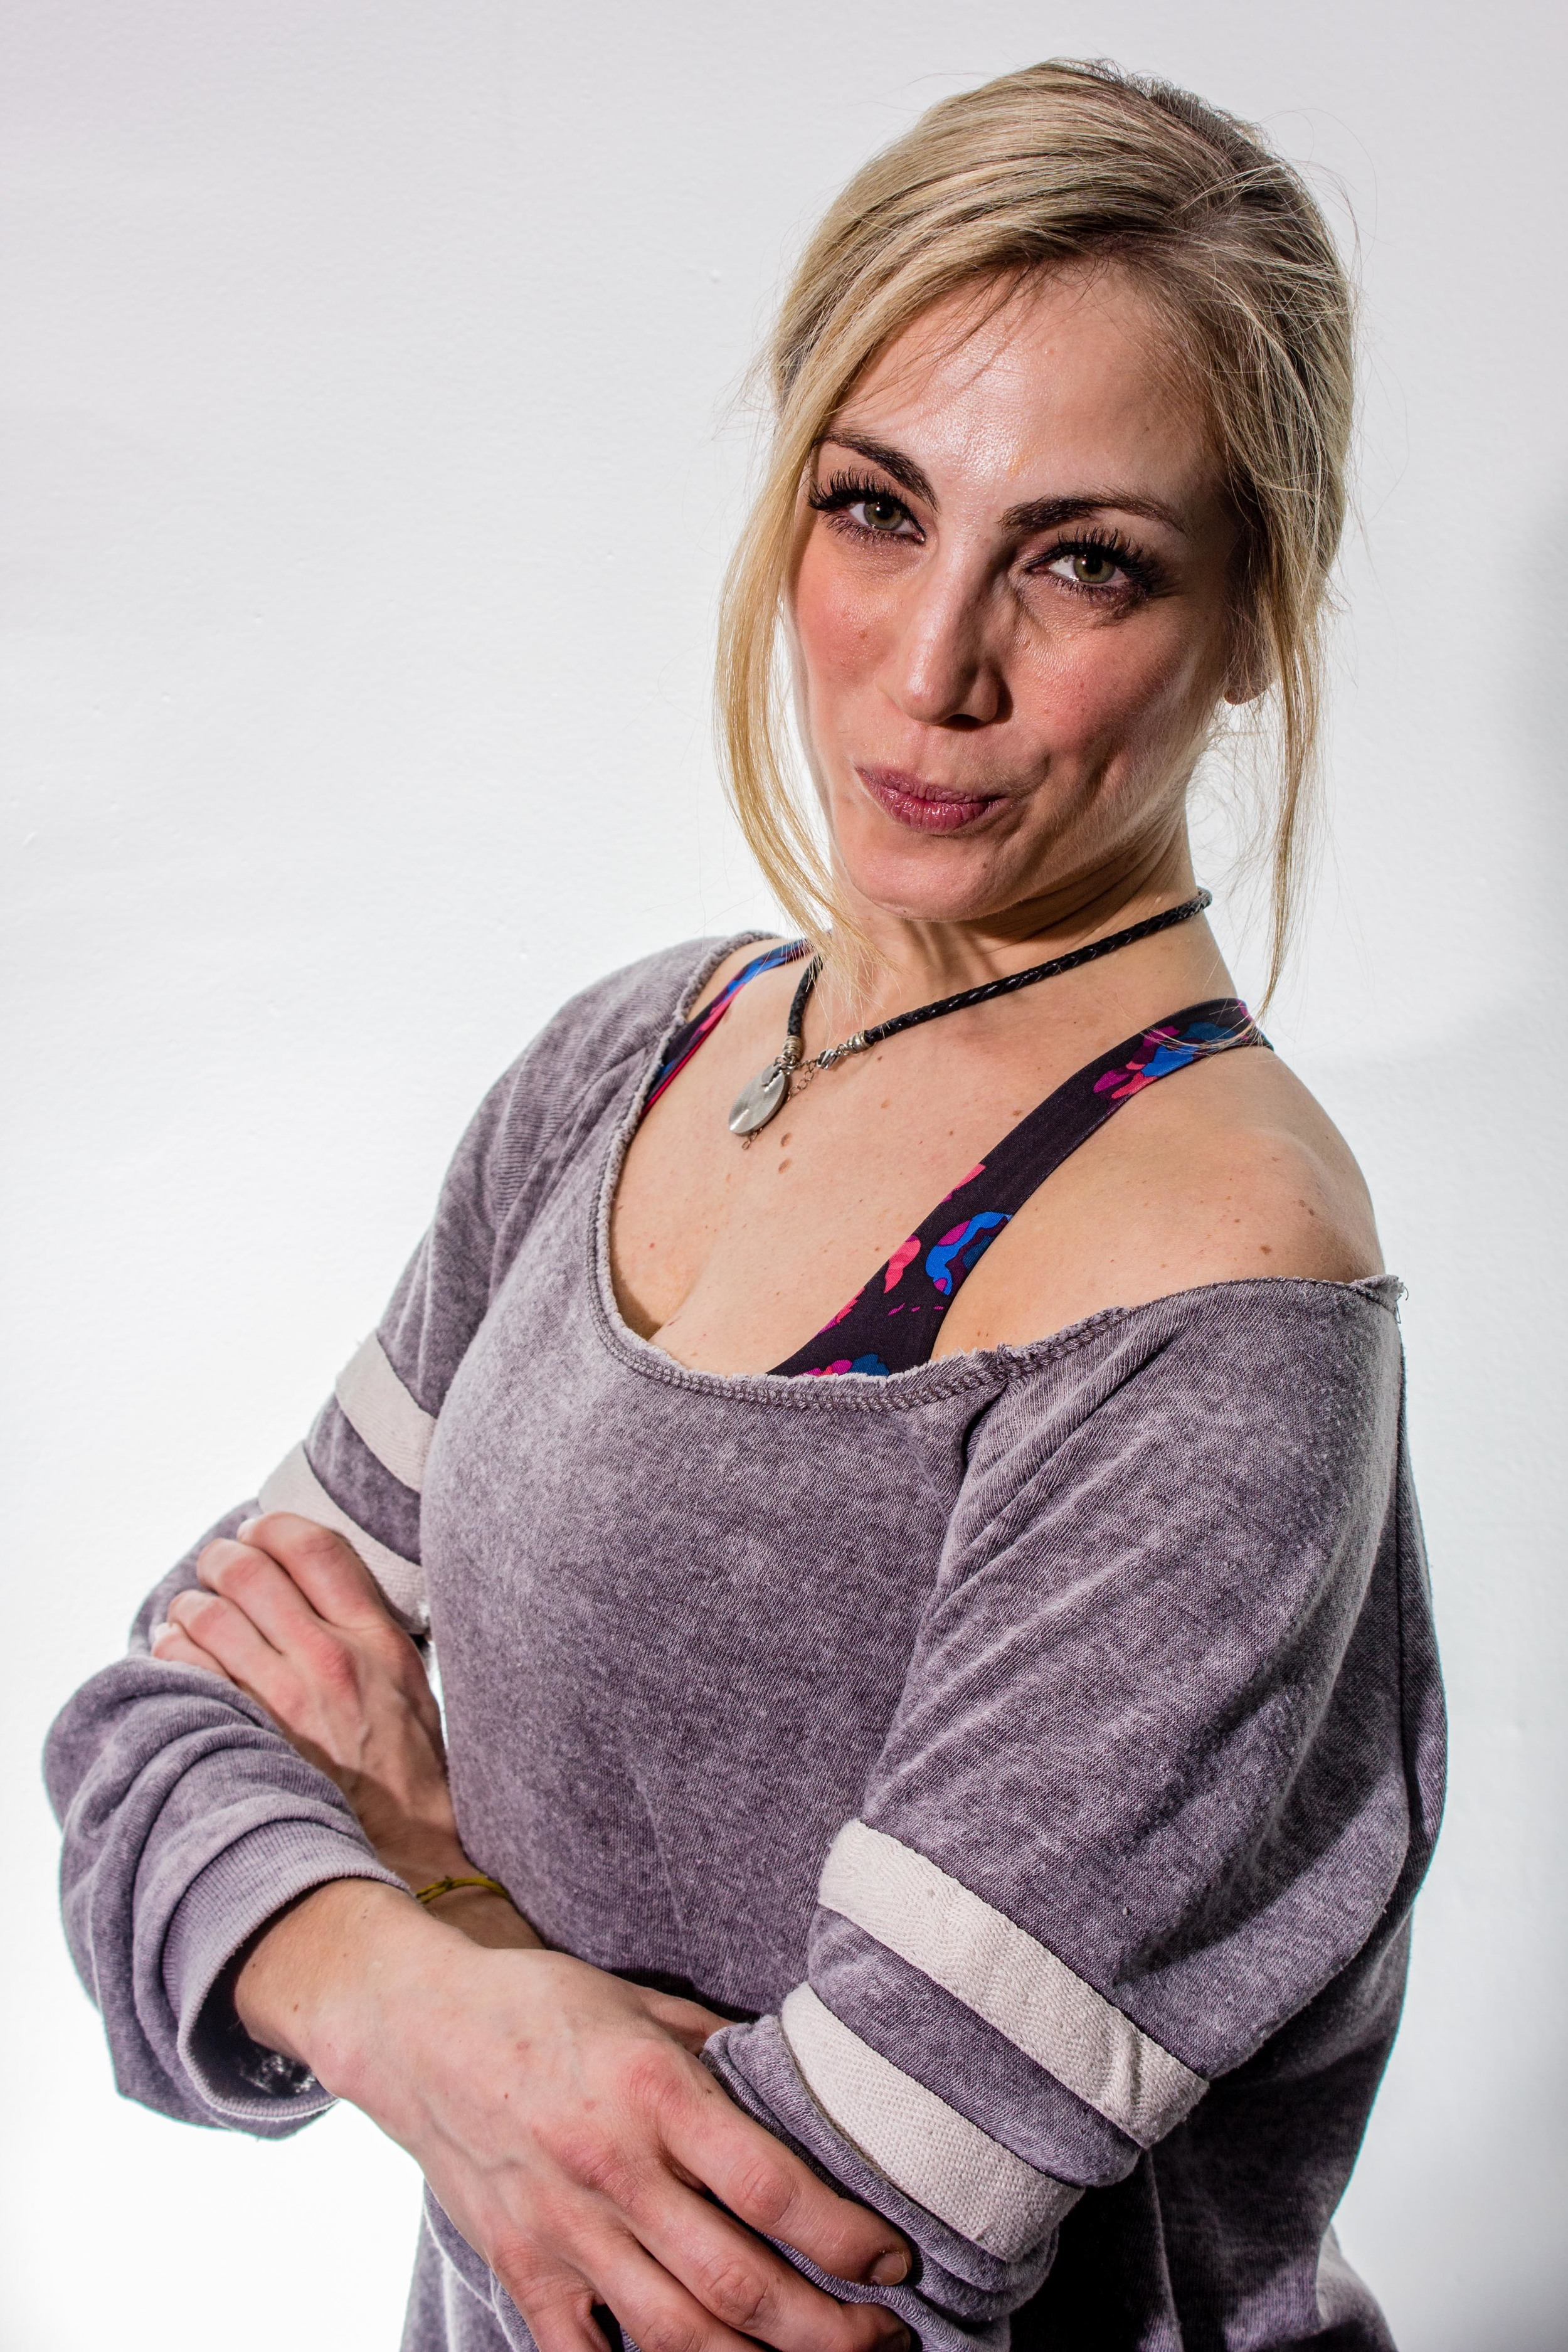 Chrissy Schultz, Instructor at The P.E. Club